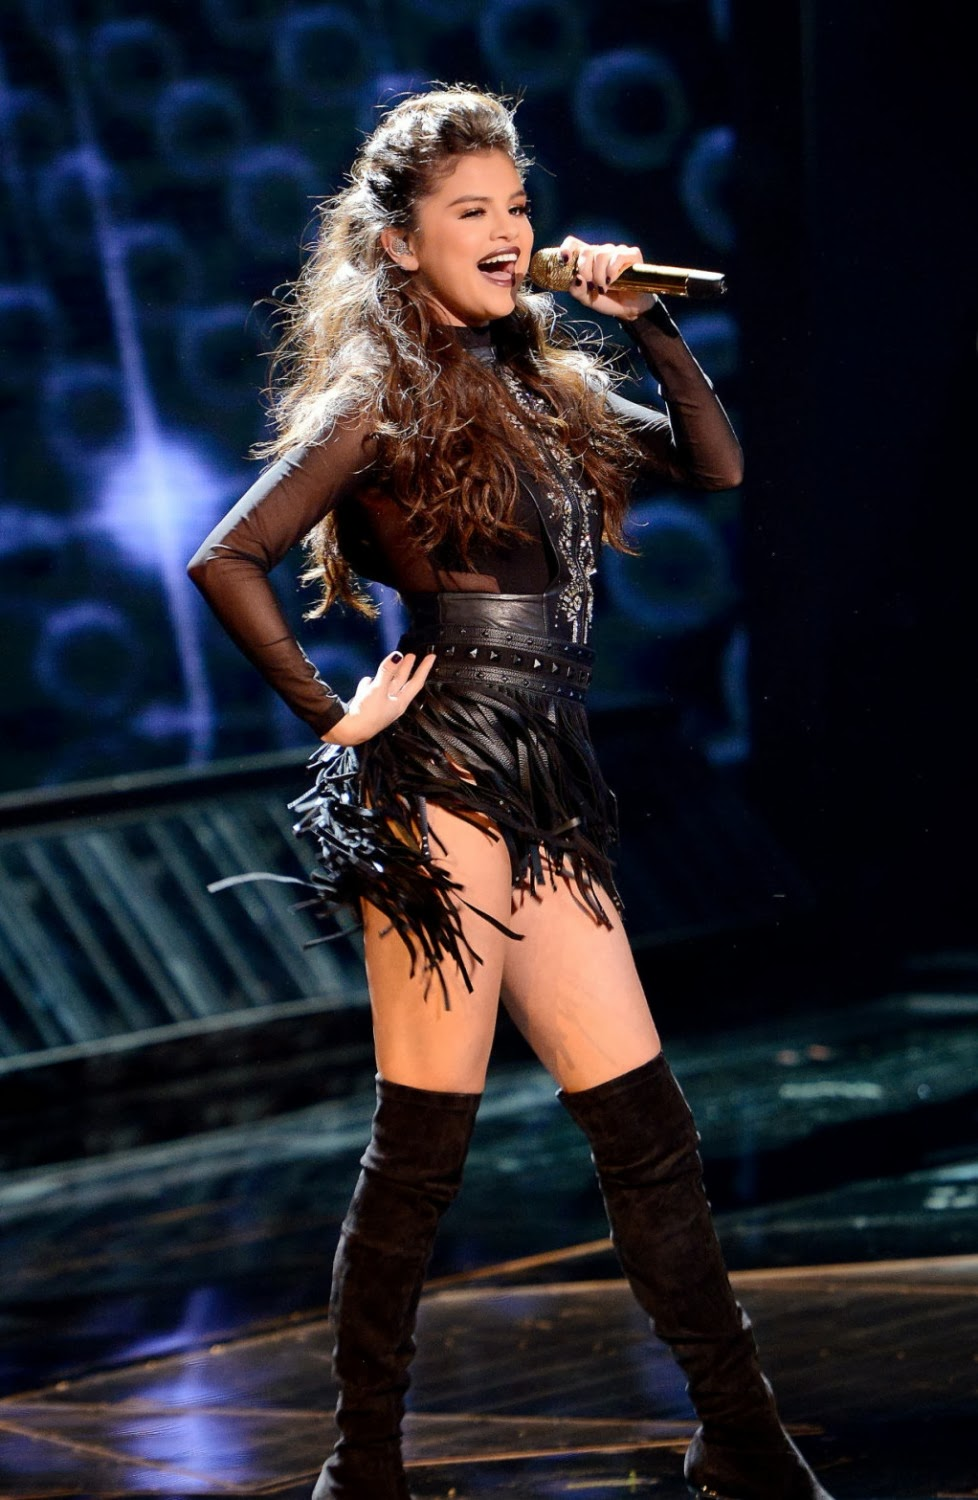 Selena Gomez Upskirt Panty Shows on The X-Factor in